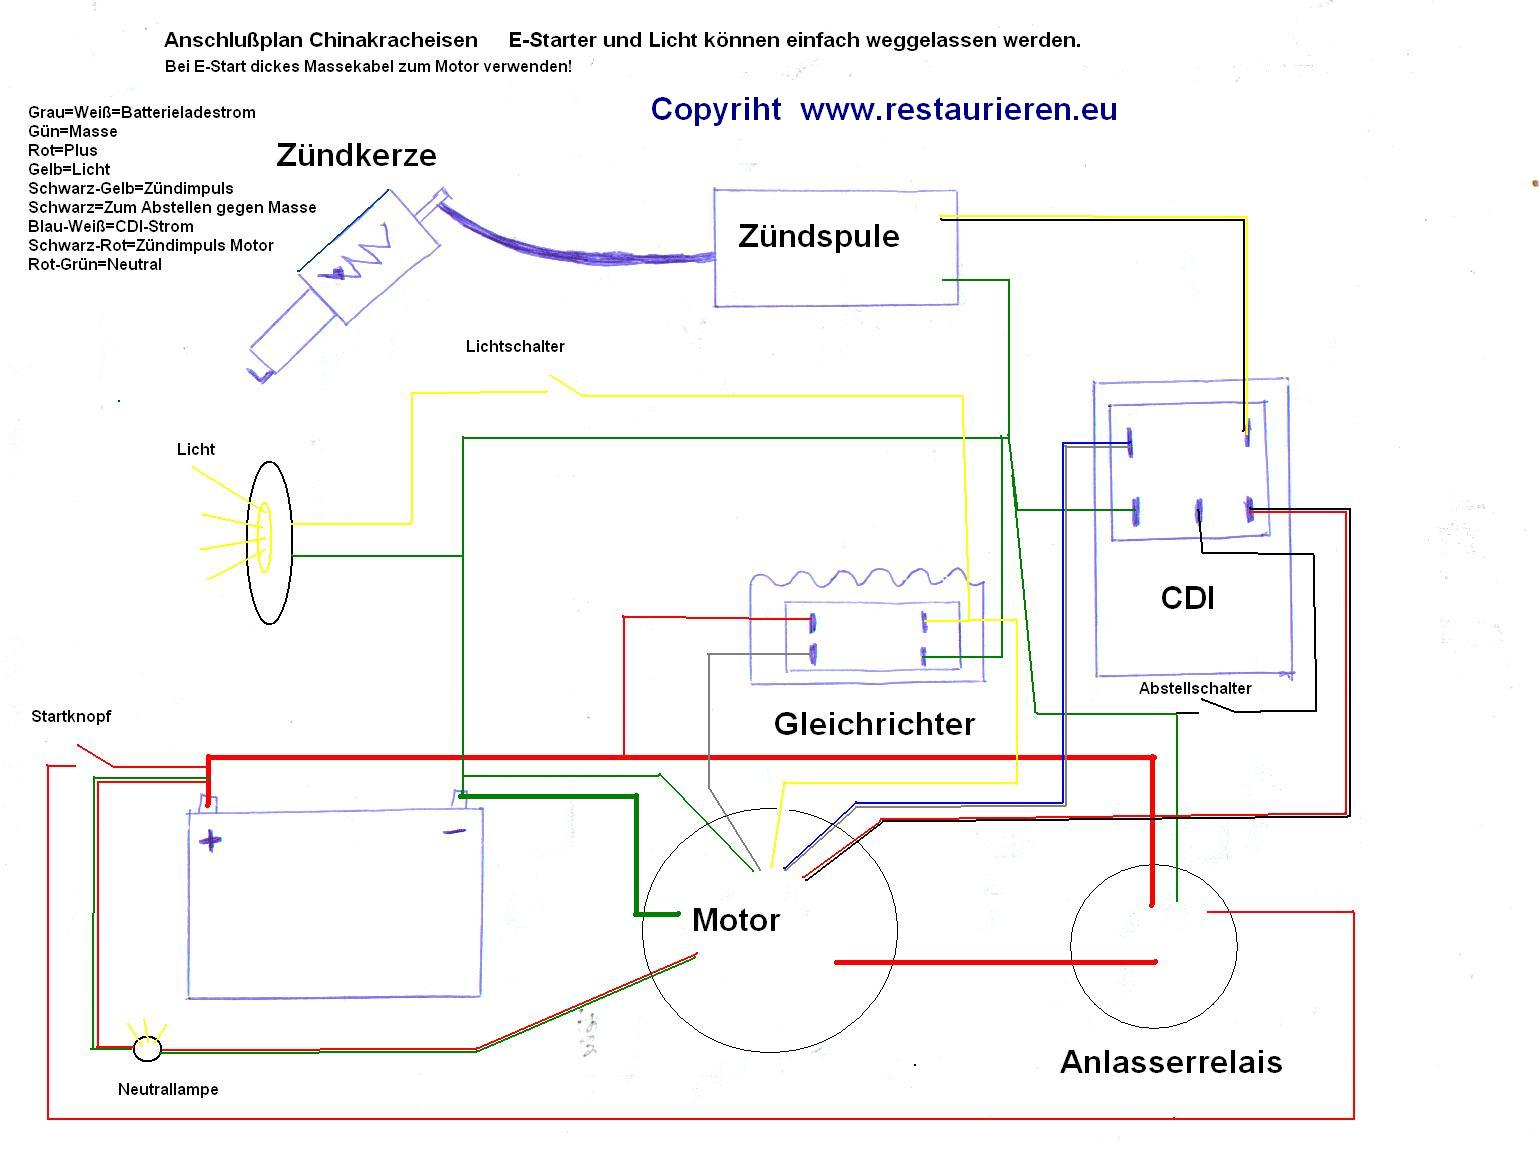 Luxury Cb200 Wiring Diagram In Color Image Collection - Electrical ...